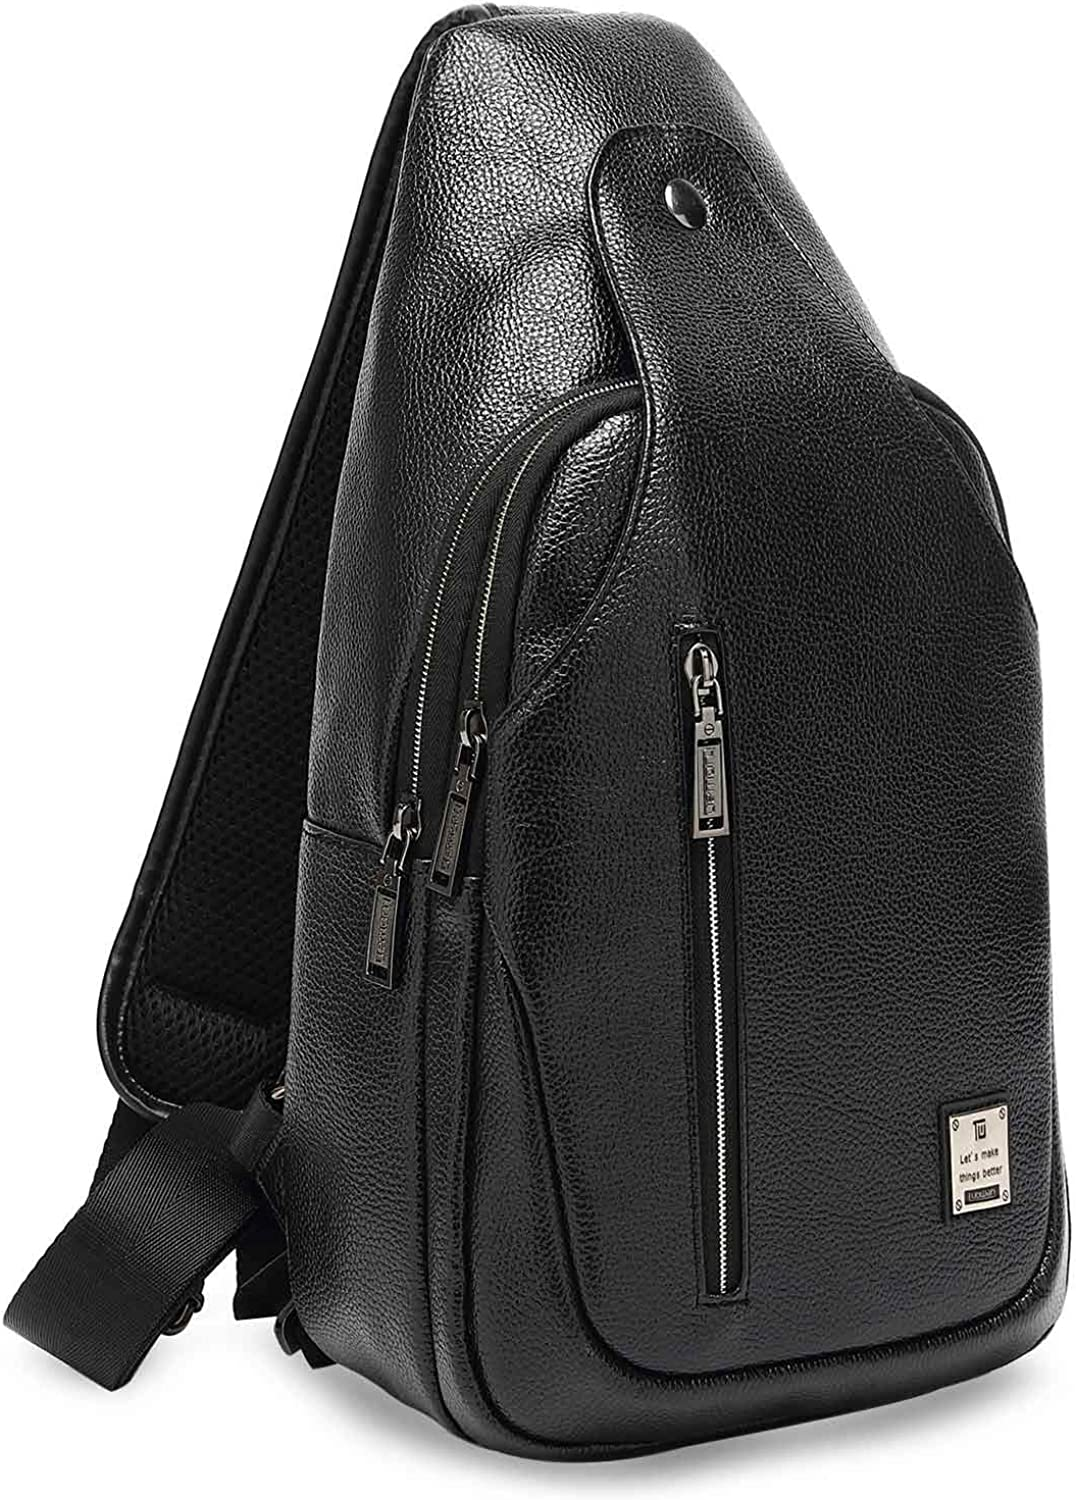 Sling Bag Chest Shoulder Backpack Crossbody Bag